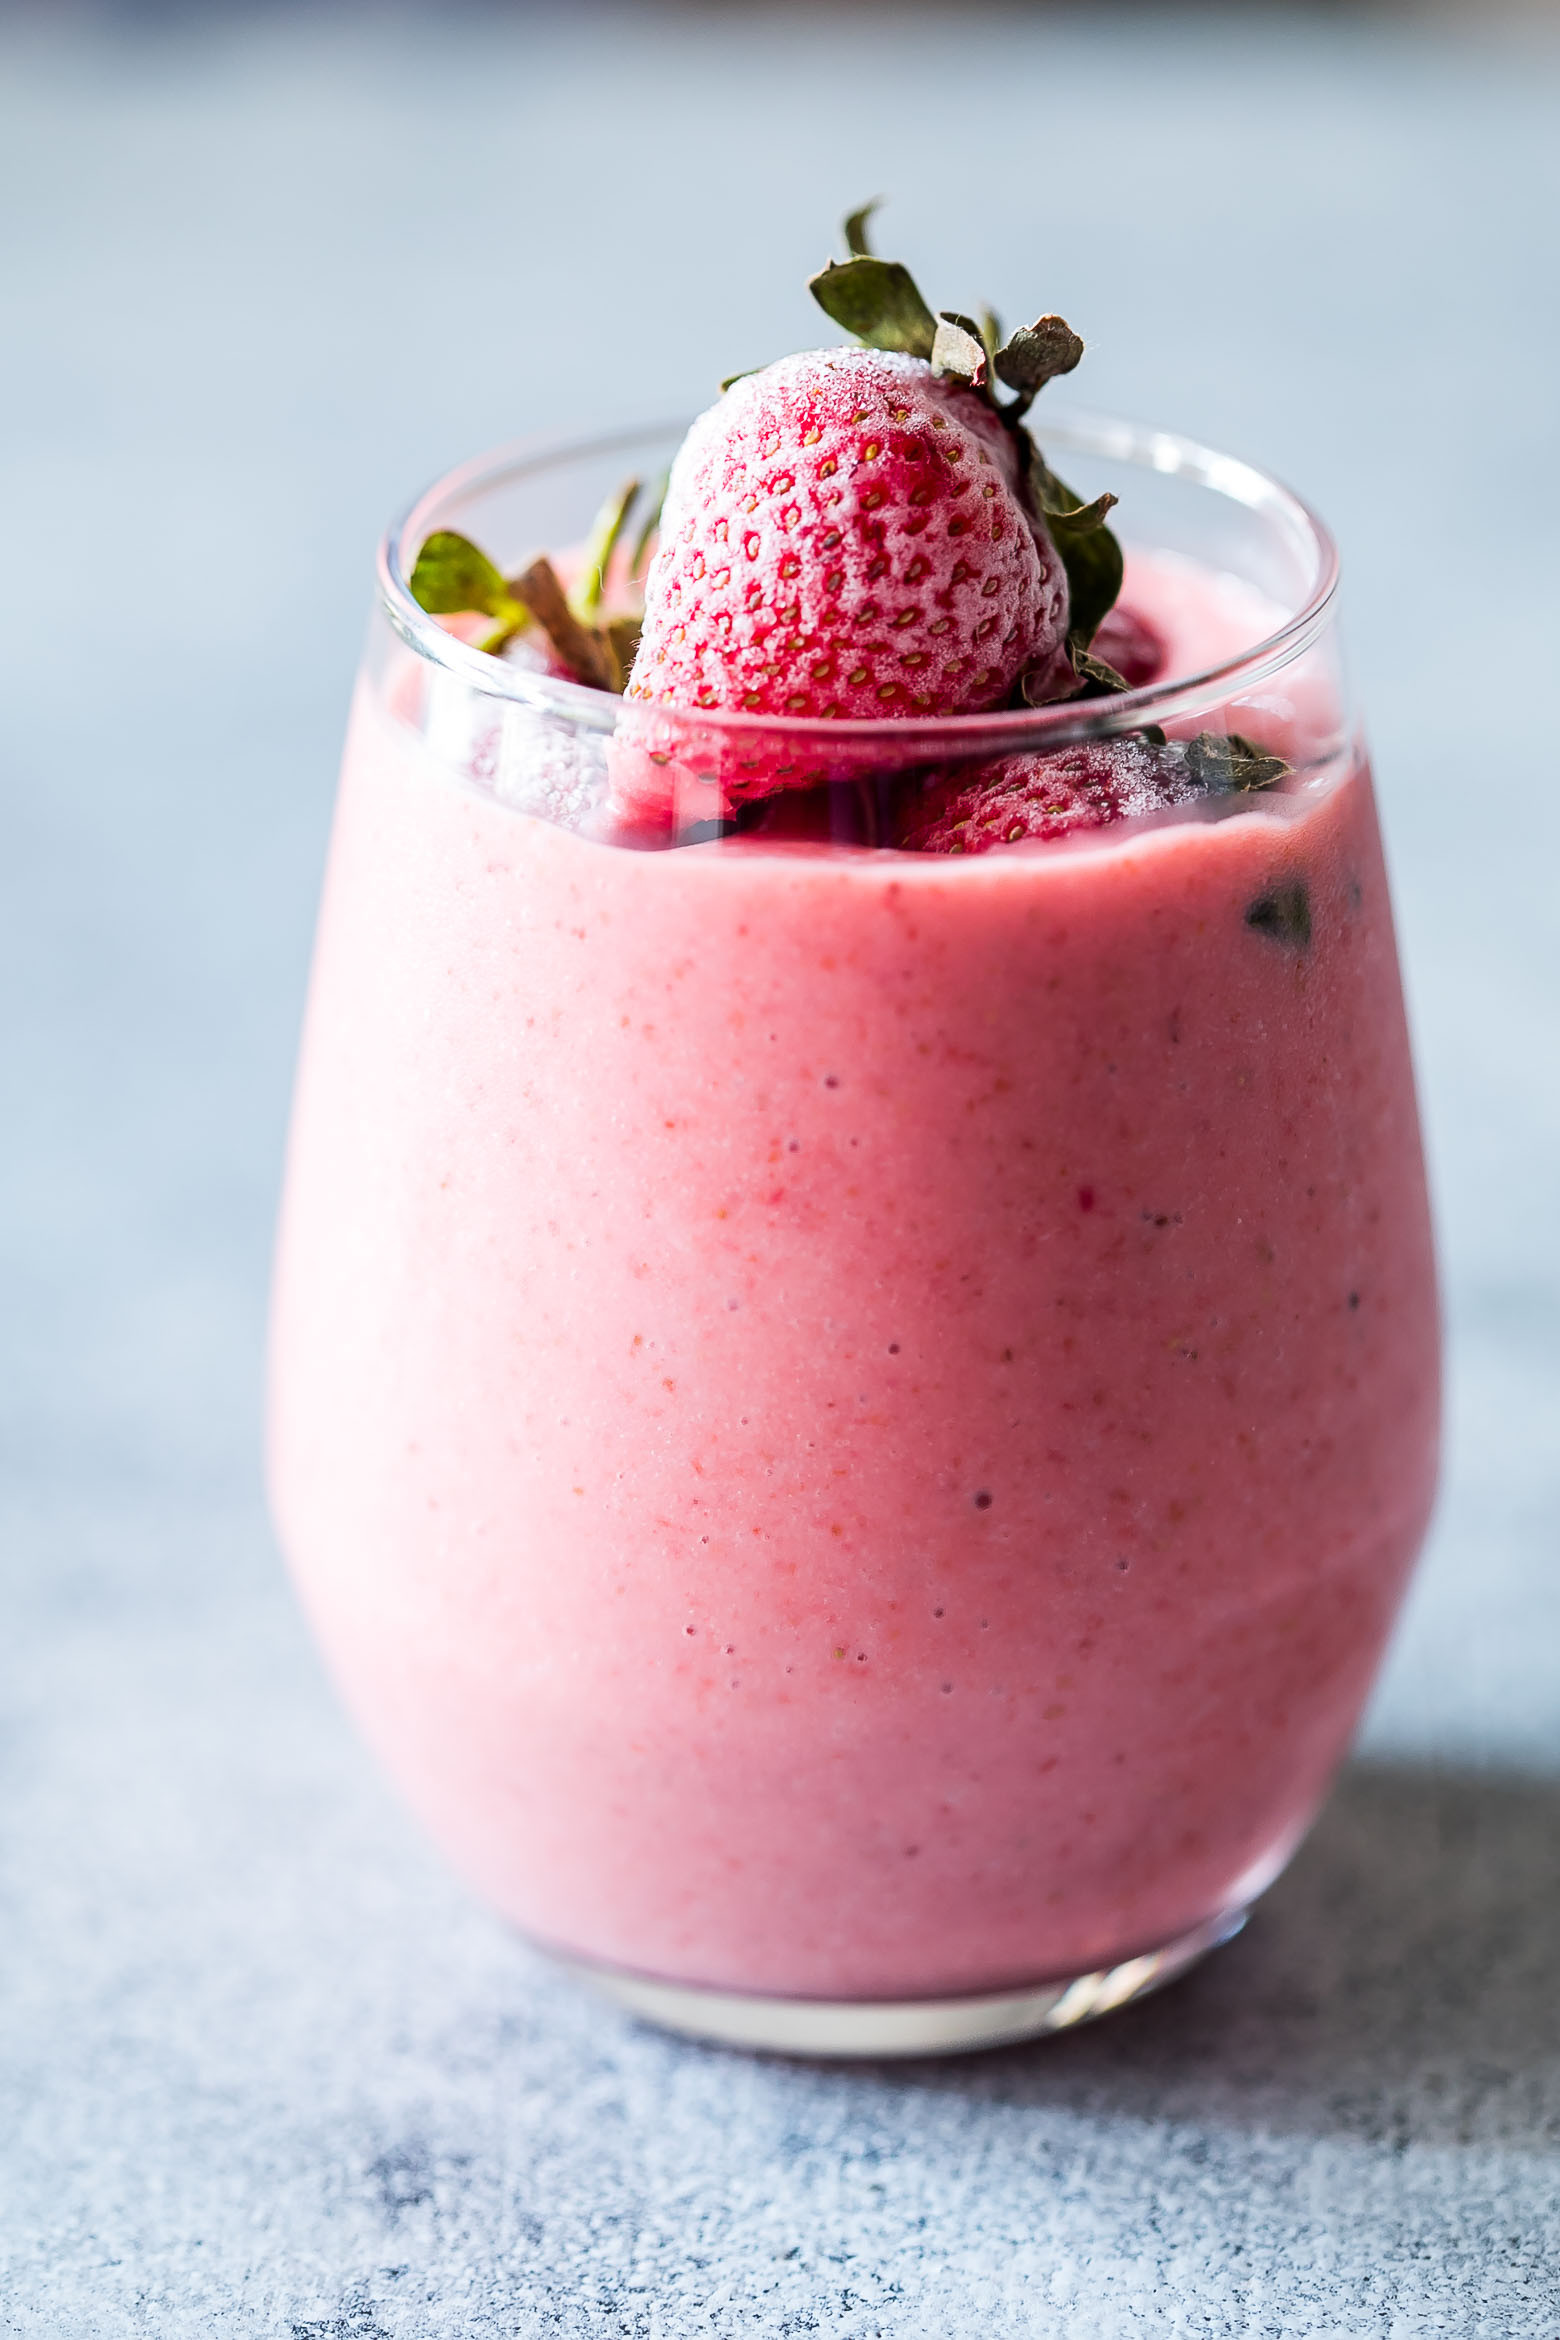 Fruit Smoothie Recipes With Yogurt  Frozen Strawberry Greek Yogurt Smoothie 10 minute Breakfast